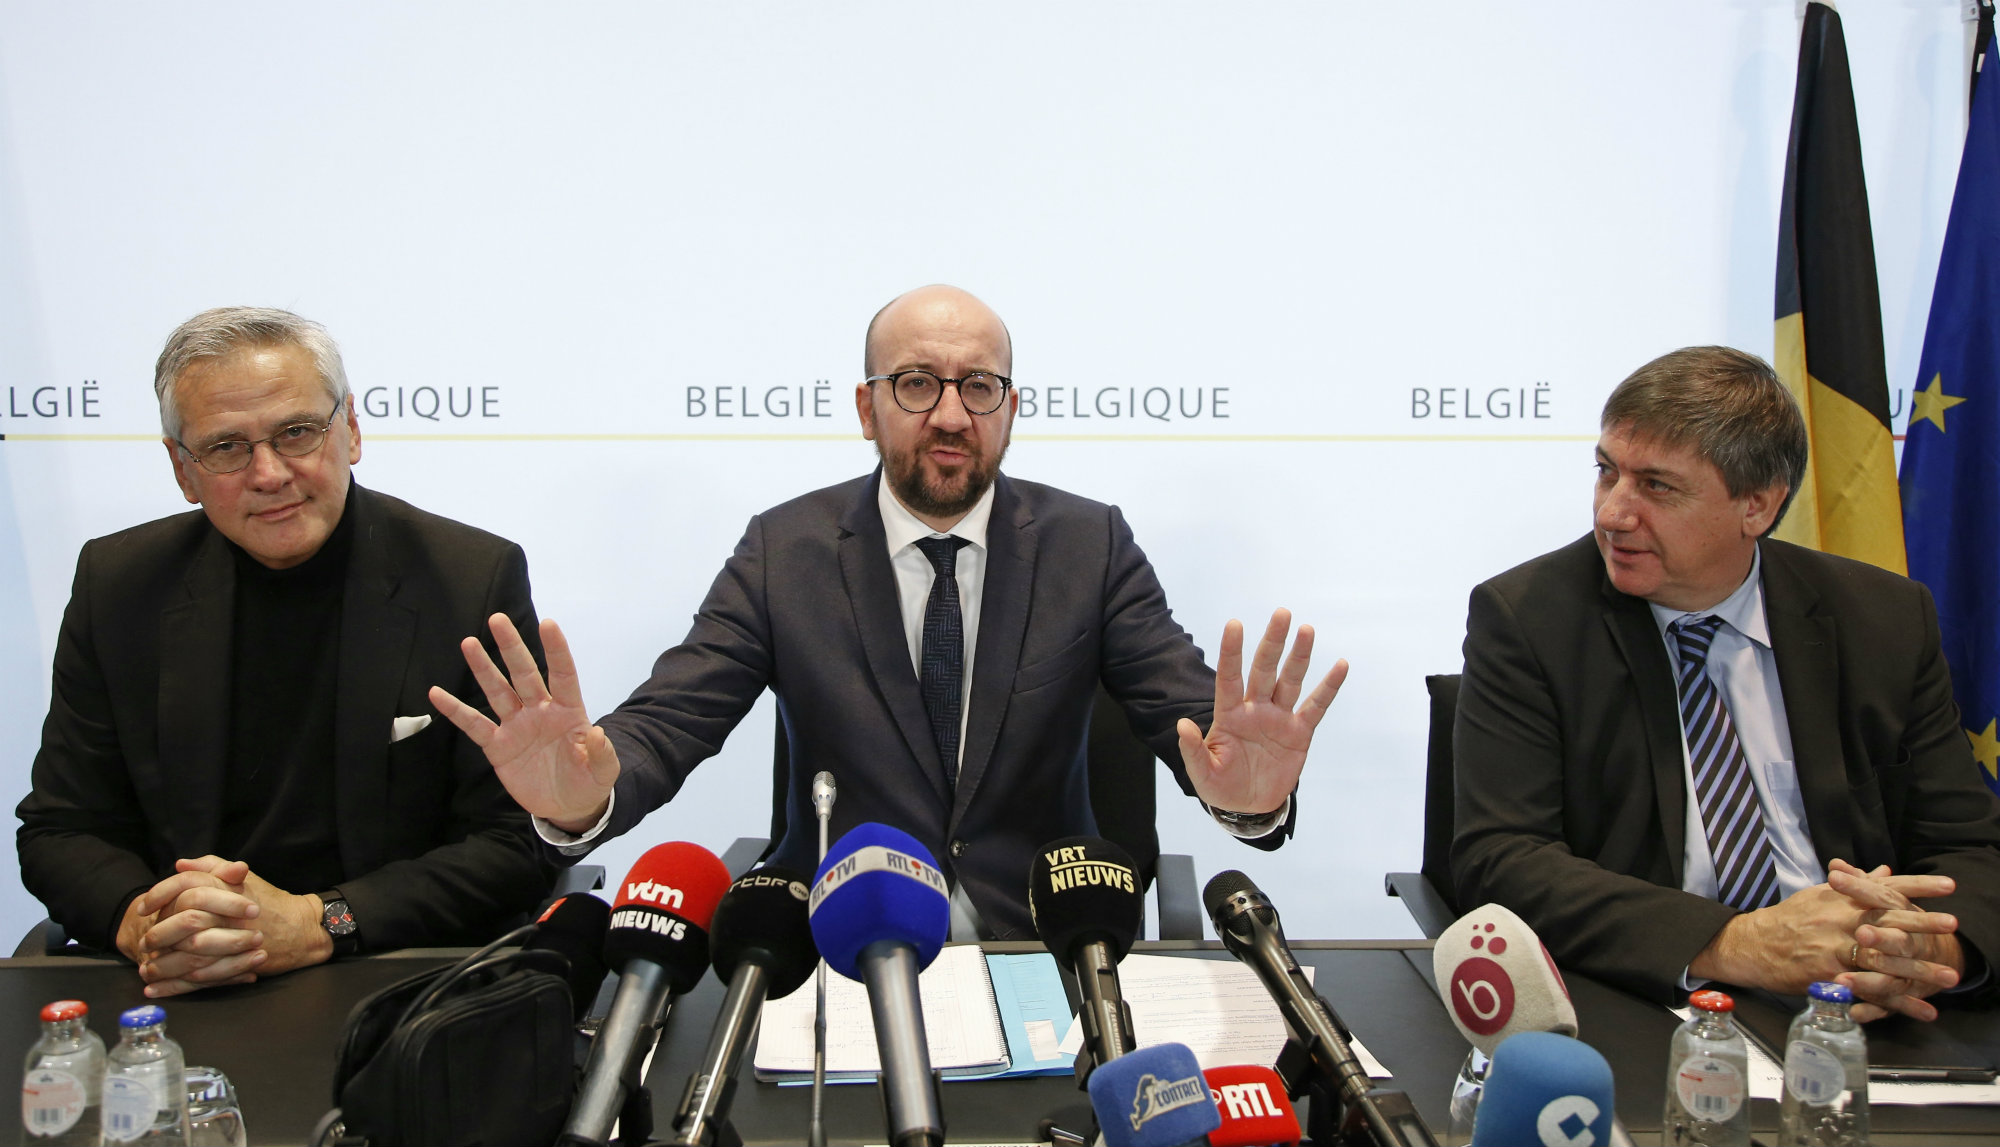 Belgium's Employment and Economy Minister Kris Peeters (L) Prime Minister Charles Michel (C) and Interior Minister Jan Jambon hold a news conference in Brussels, November 21, 2015, after security was tightened in Belgium following the fatal attacks in Paris.